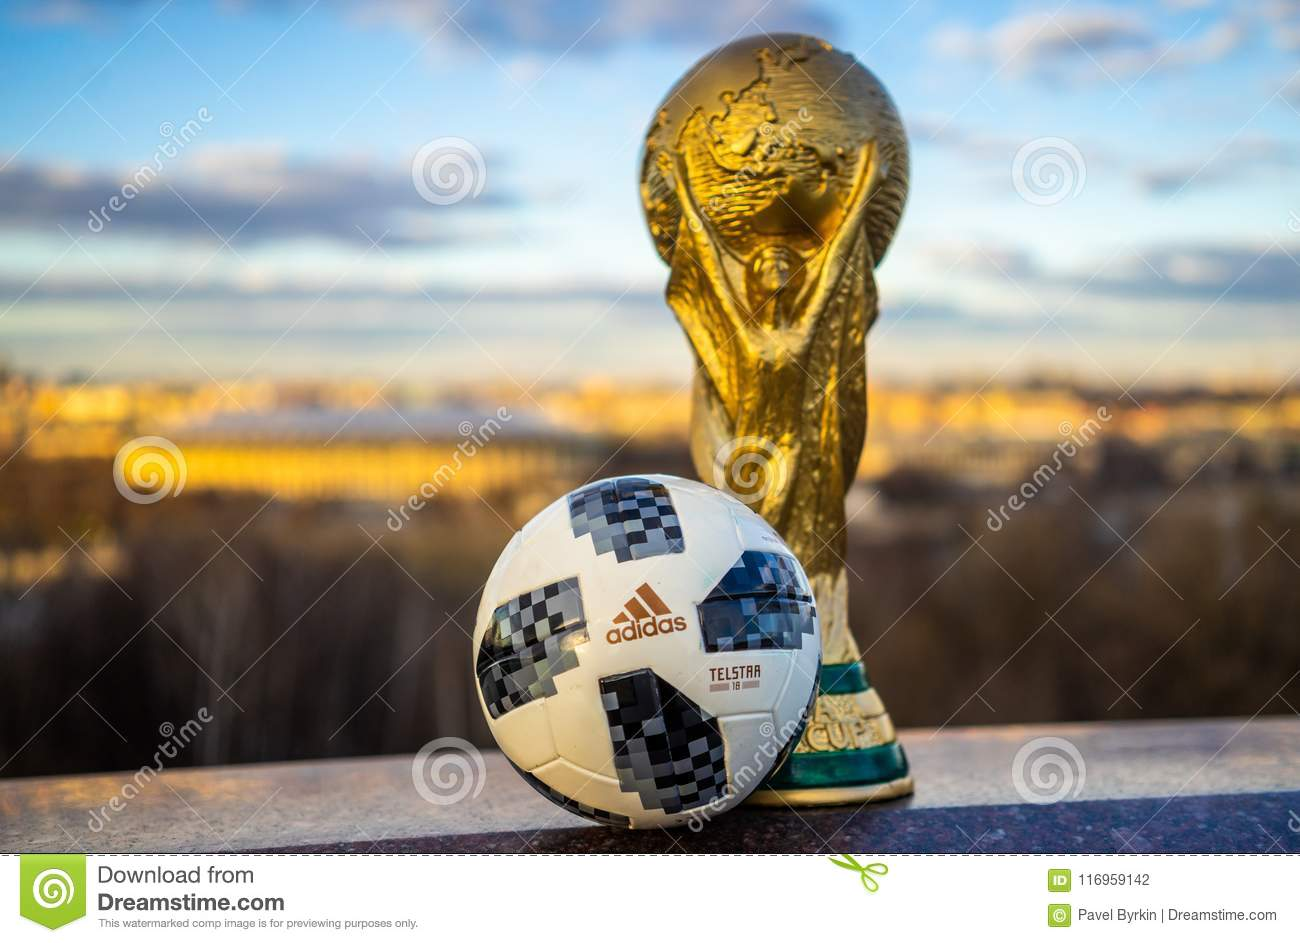 Trophy of the FIFA World Cup